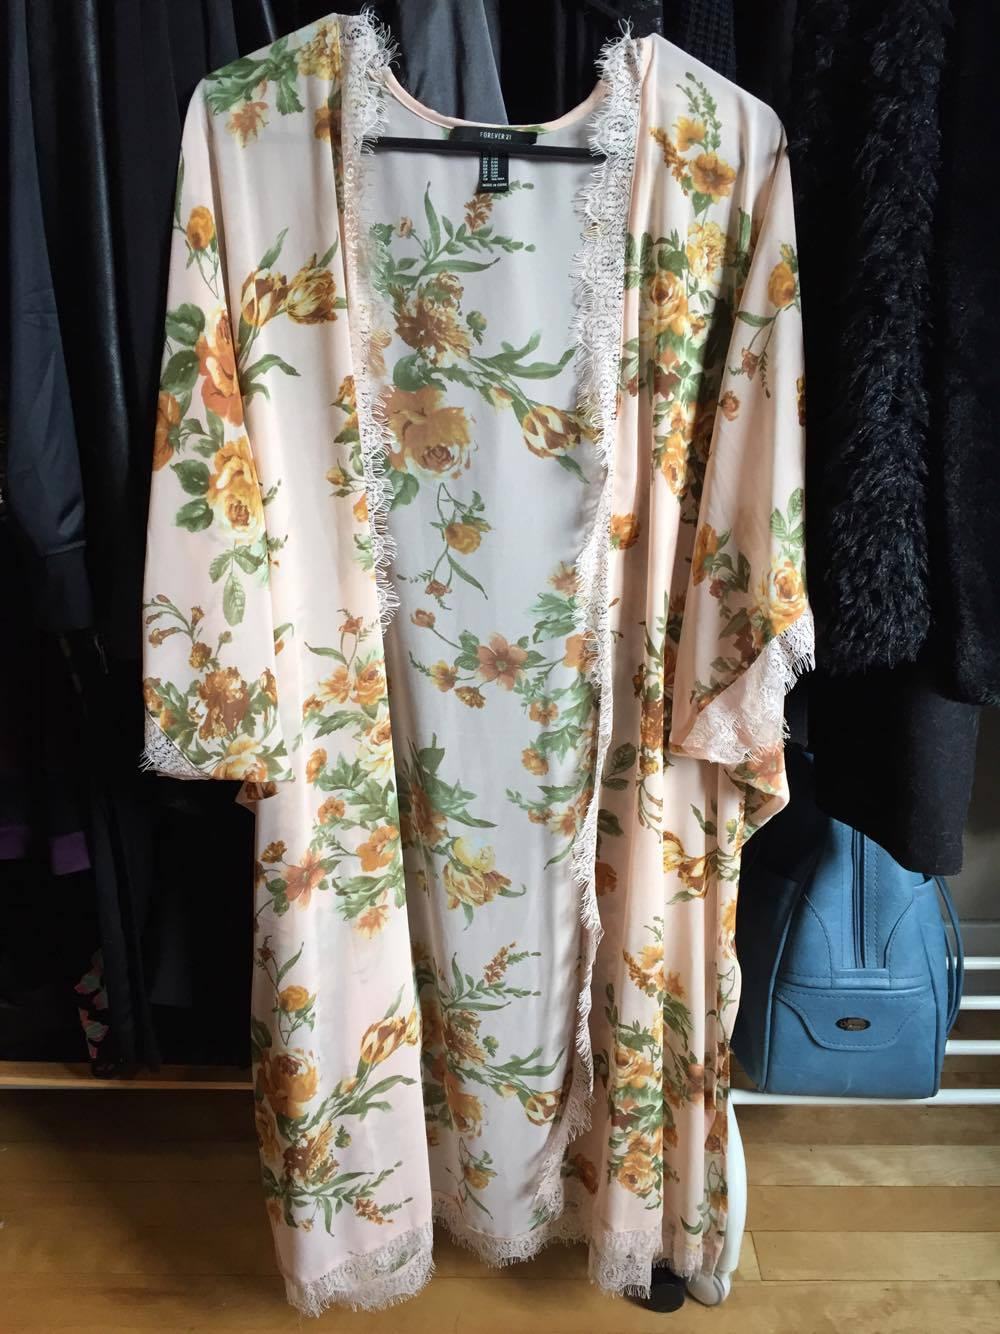 robe dress outfit fashion linge vetements mode ootd look fleurs